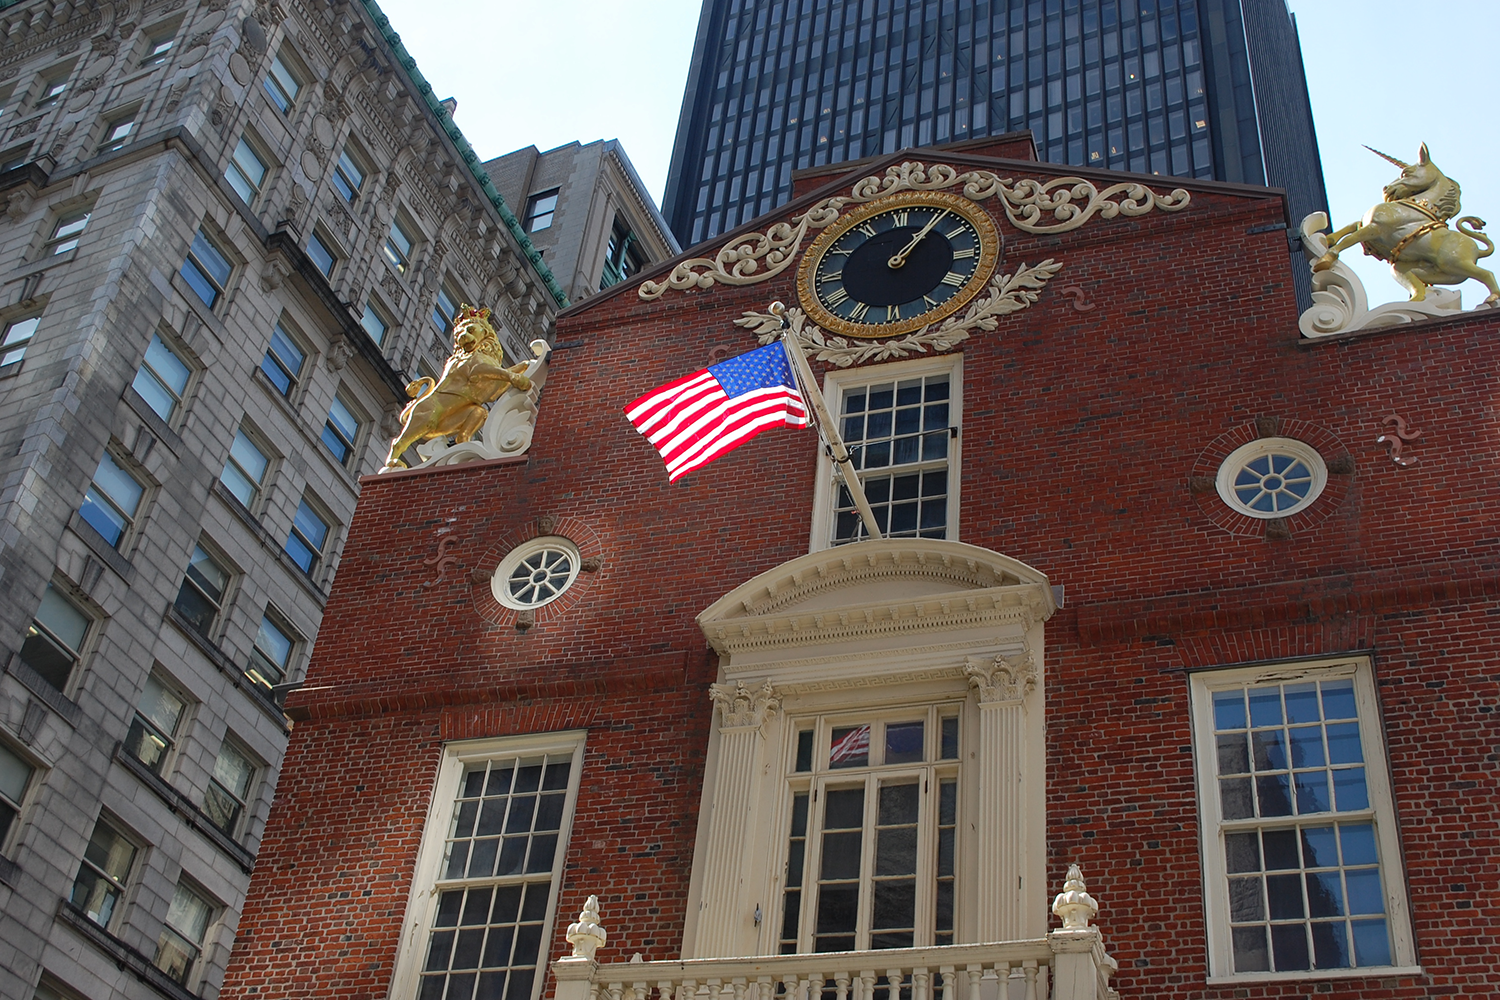 The American flag flying at the Old State House.